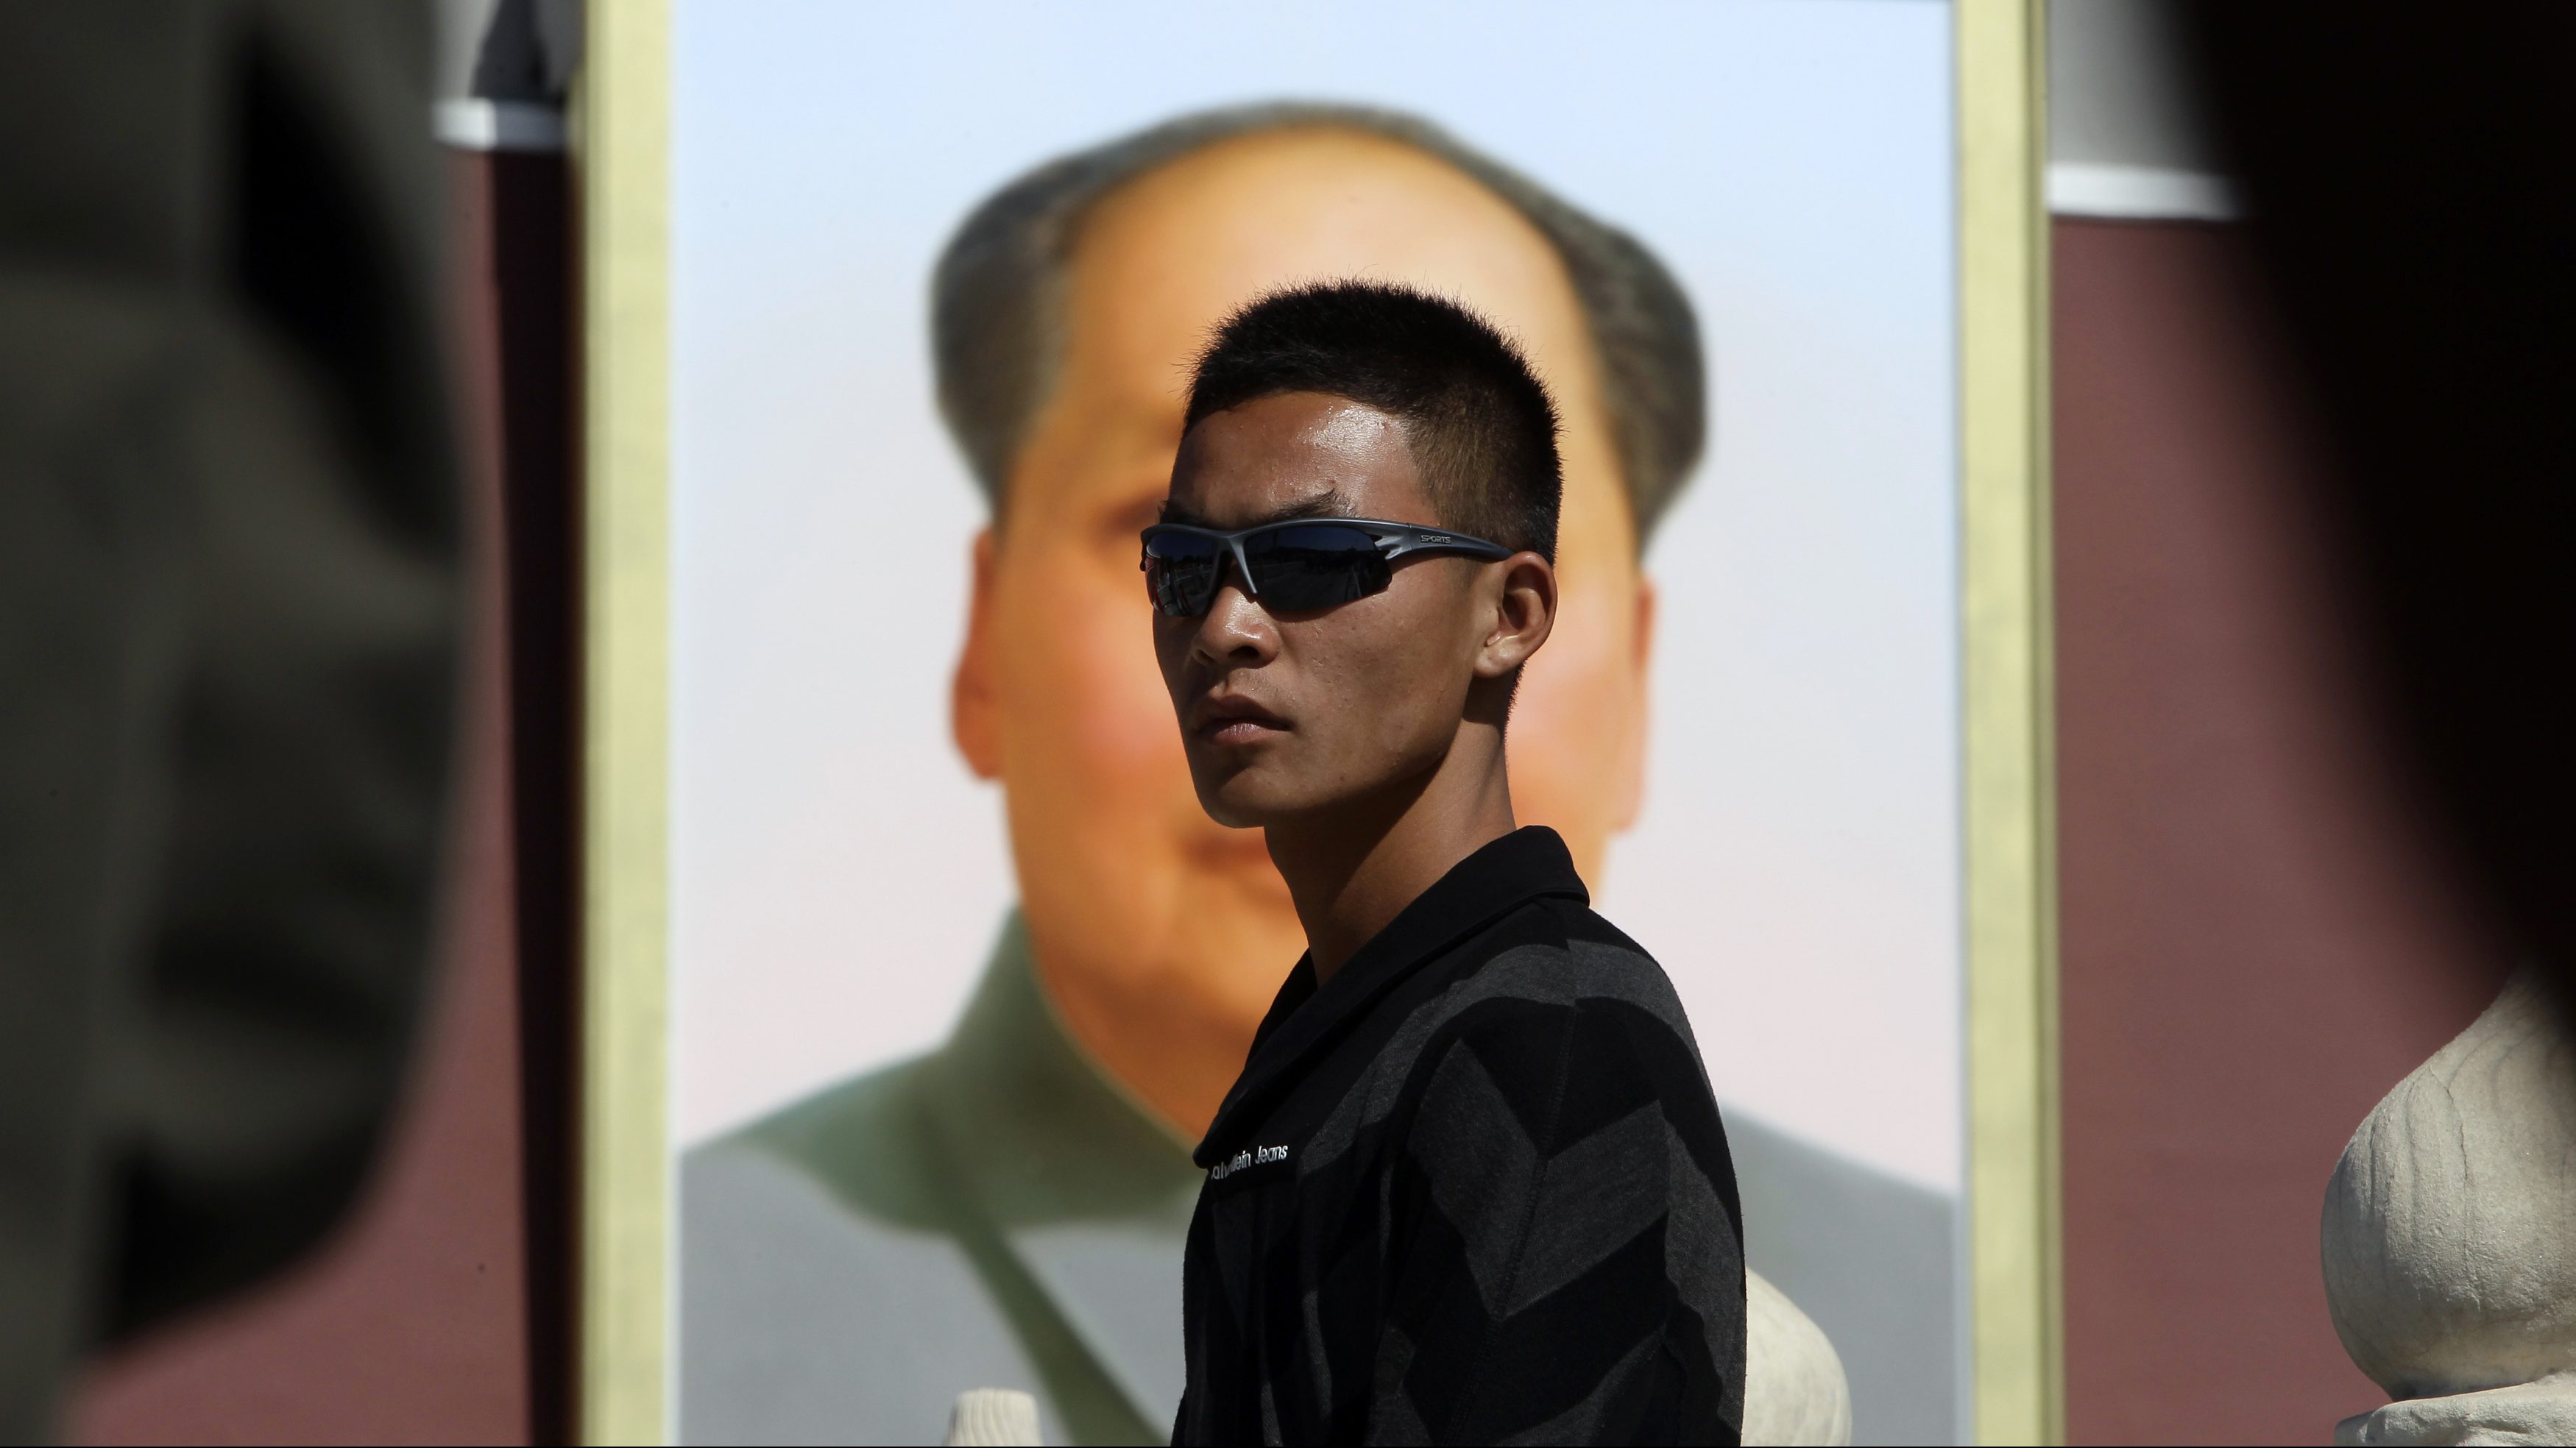 A plainclothes paramilitary policeman keeps watch in front of a portrait of China's late chairman Mao Zedong as tourists walk through Tiananmen Gate in Beijing October 1, 2011, on China's 62nd National Day.